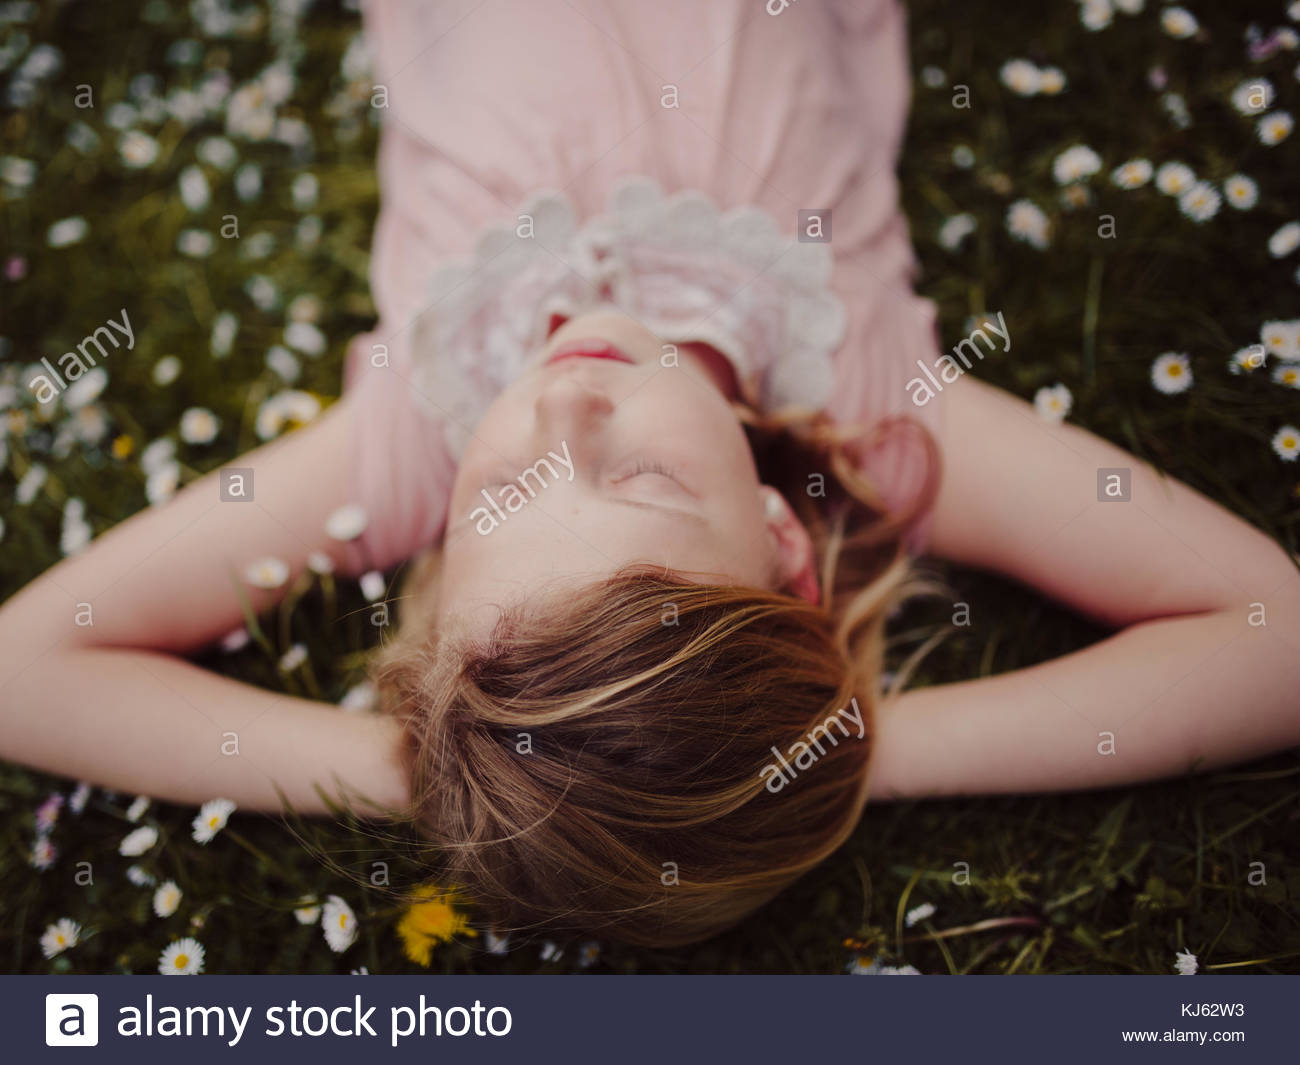 Young girl in pink dress laying in the grass - Stock Image